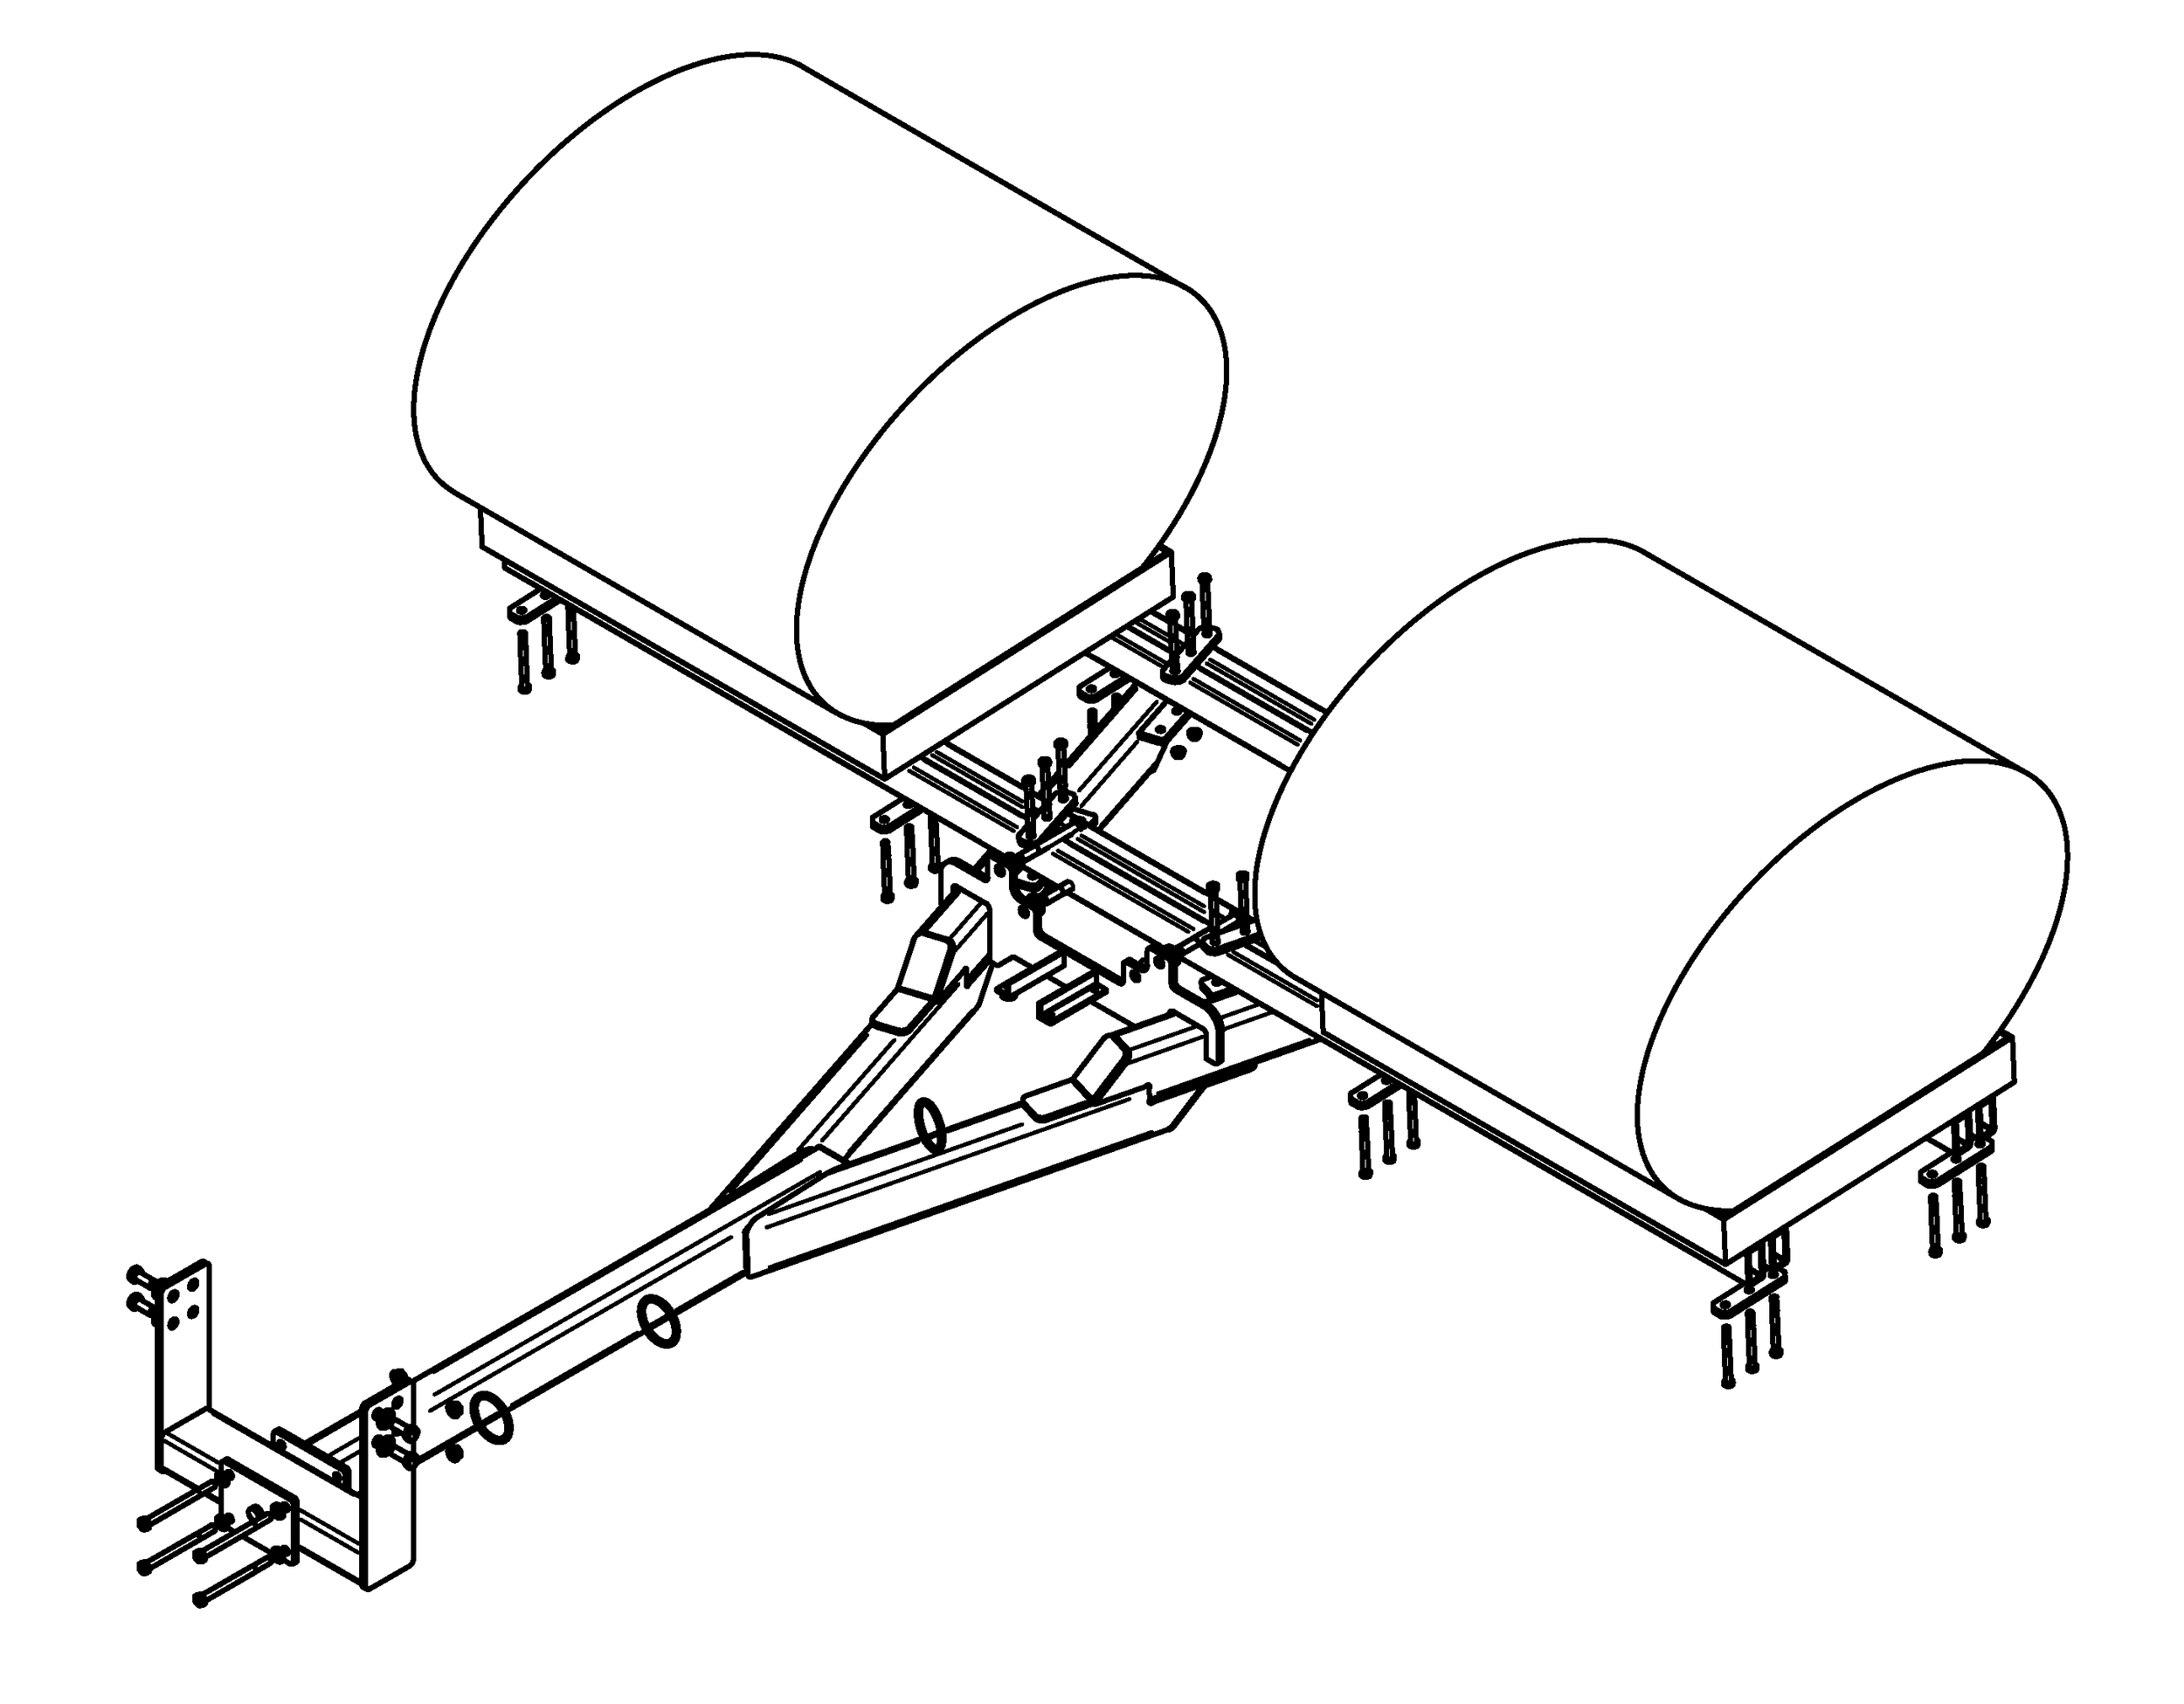 JD Y2 - Fits 8x20 thru current 8xR Series. The belly bracket fits the prior powershift, the current M23 powershift, and the IVT. Small modification required for 20 series solid axle tractors.